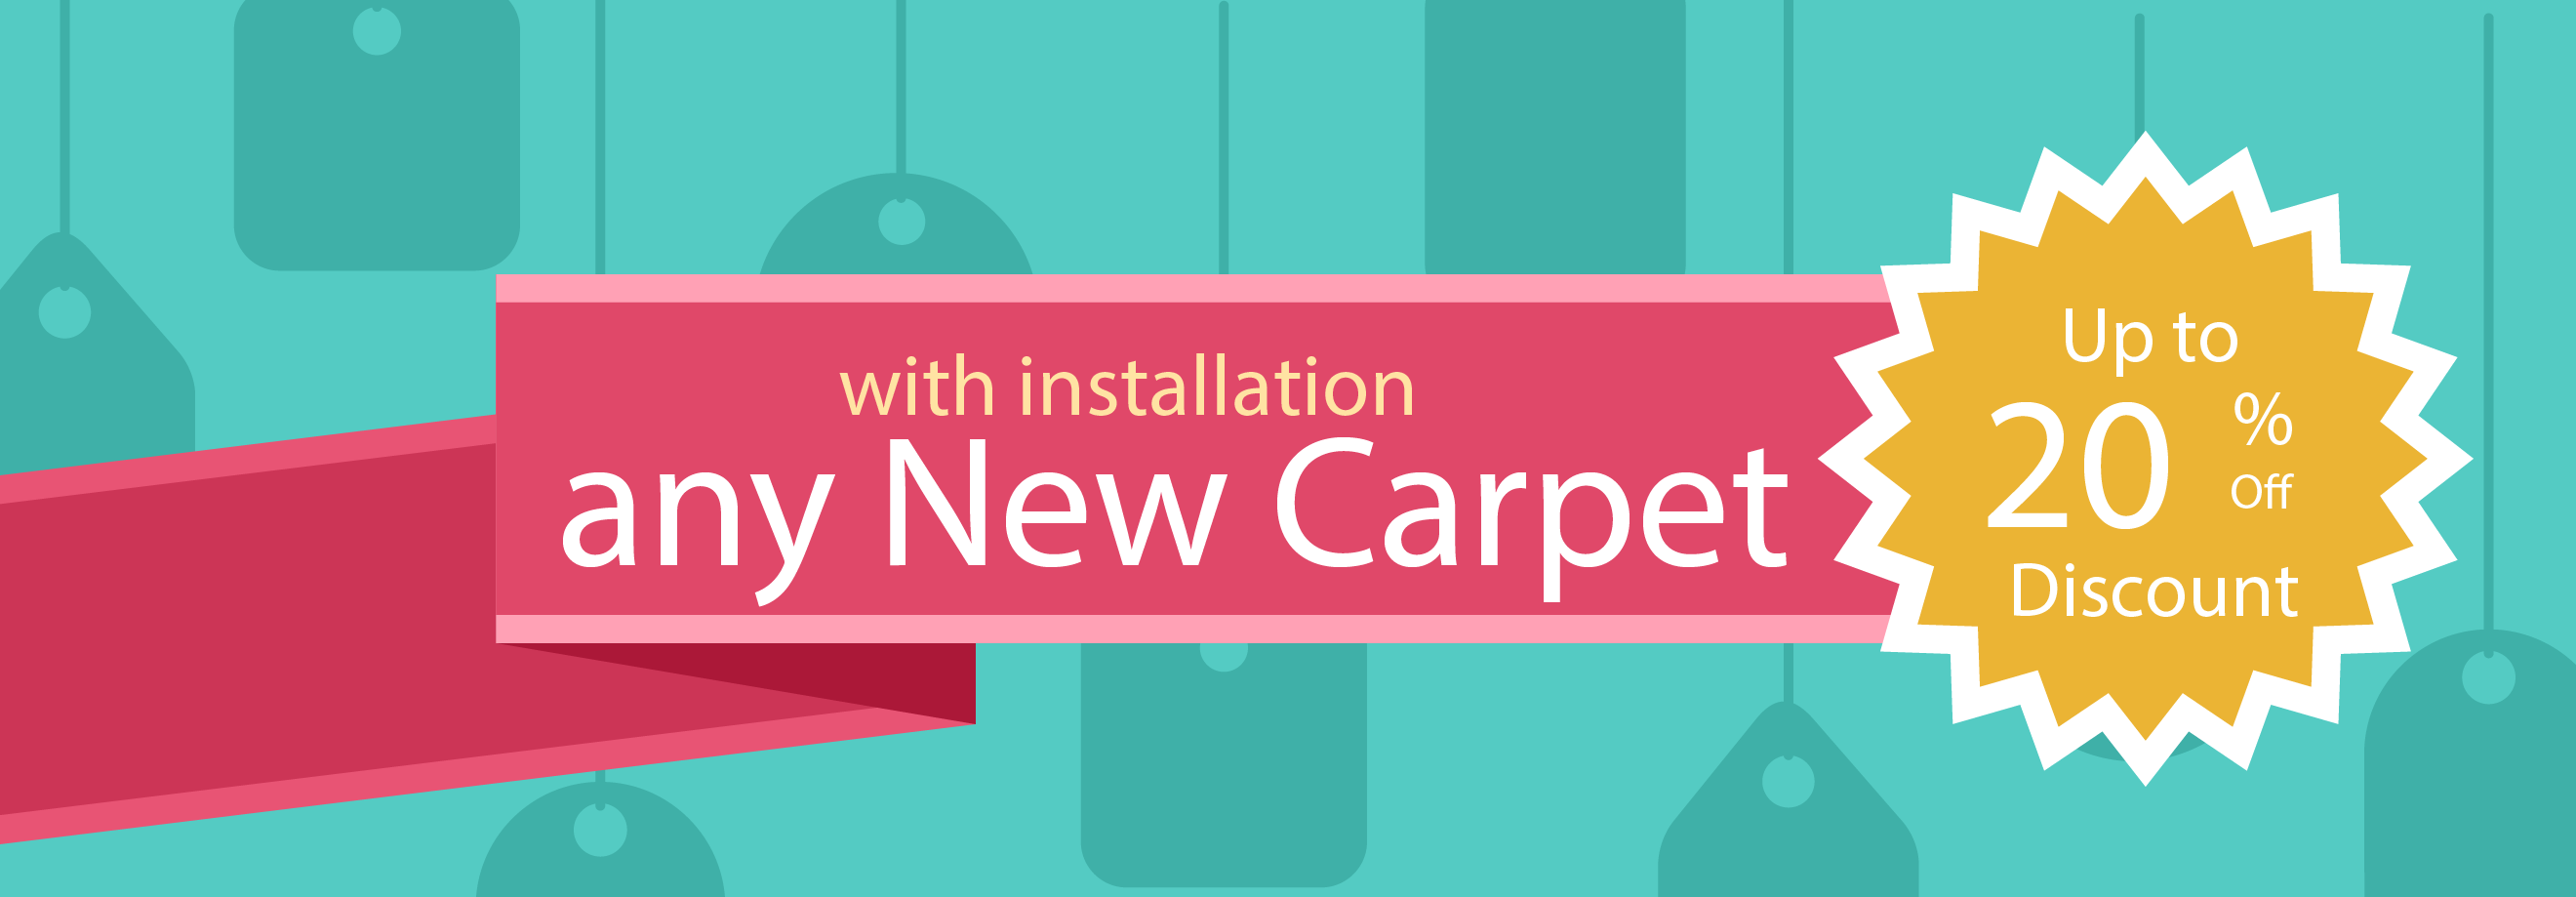 With installation any new carpet